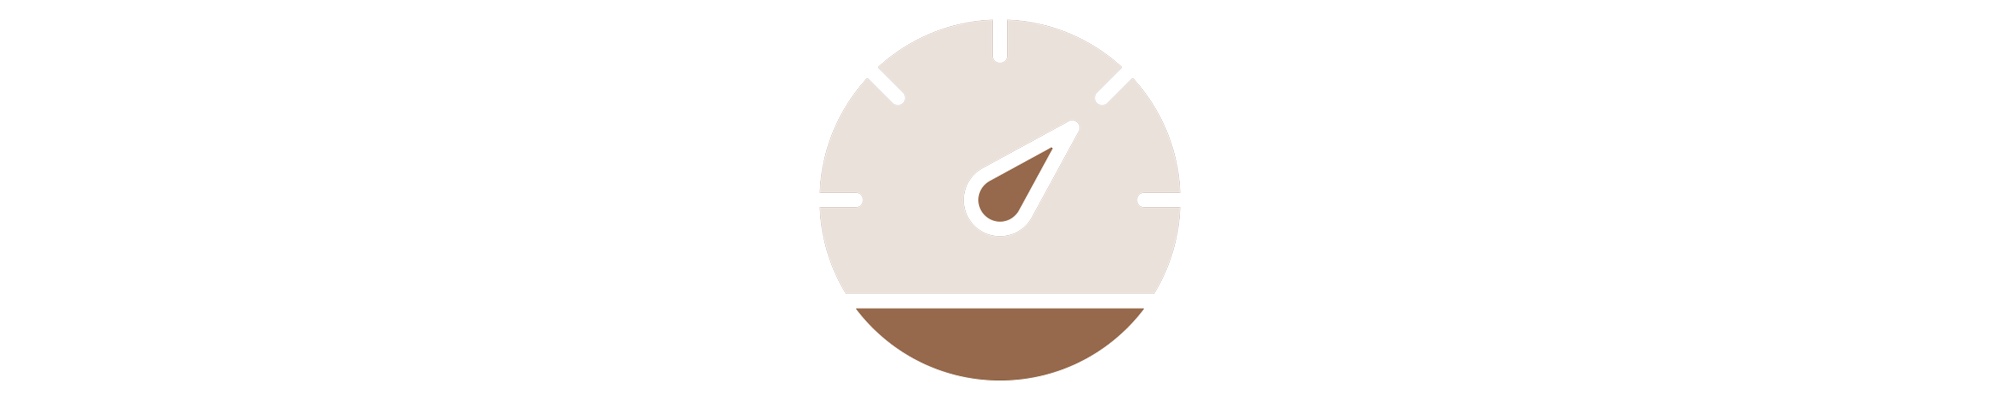 speed-detail-icon.png